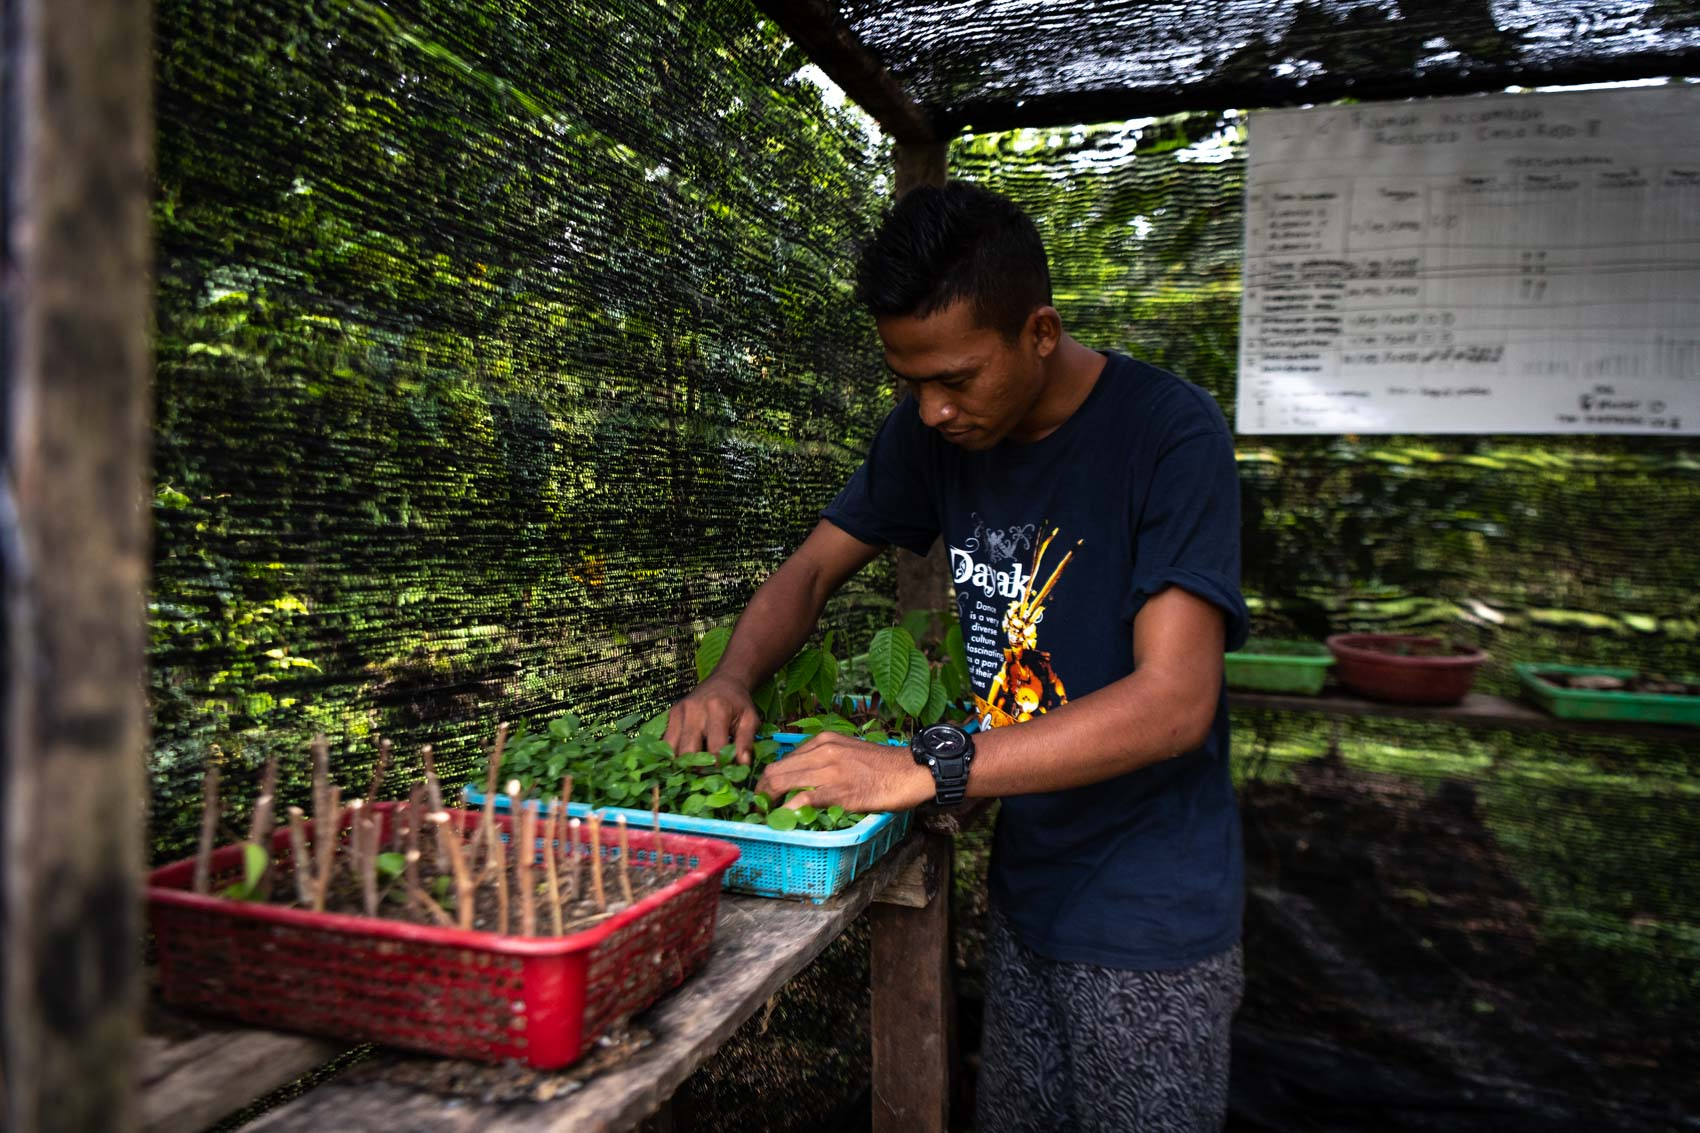 Orangutan Information Centre restoration technician checks on seedlings in a nursery